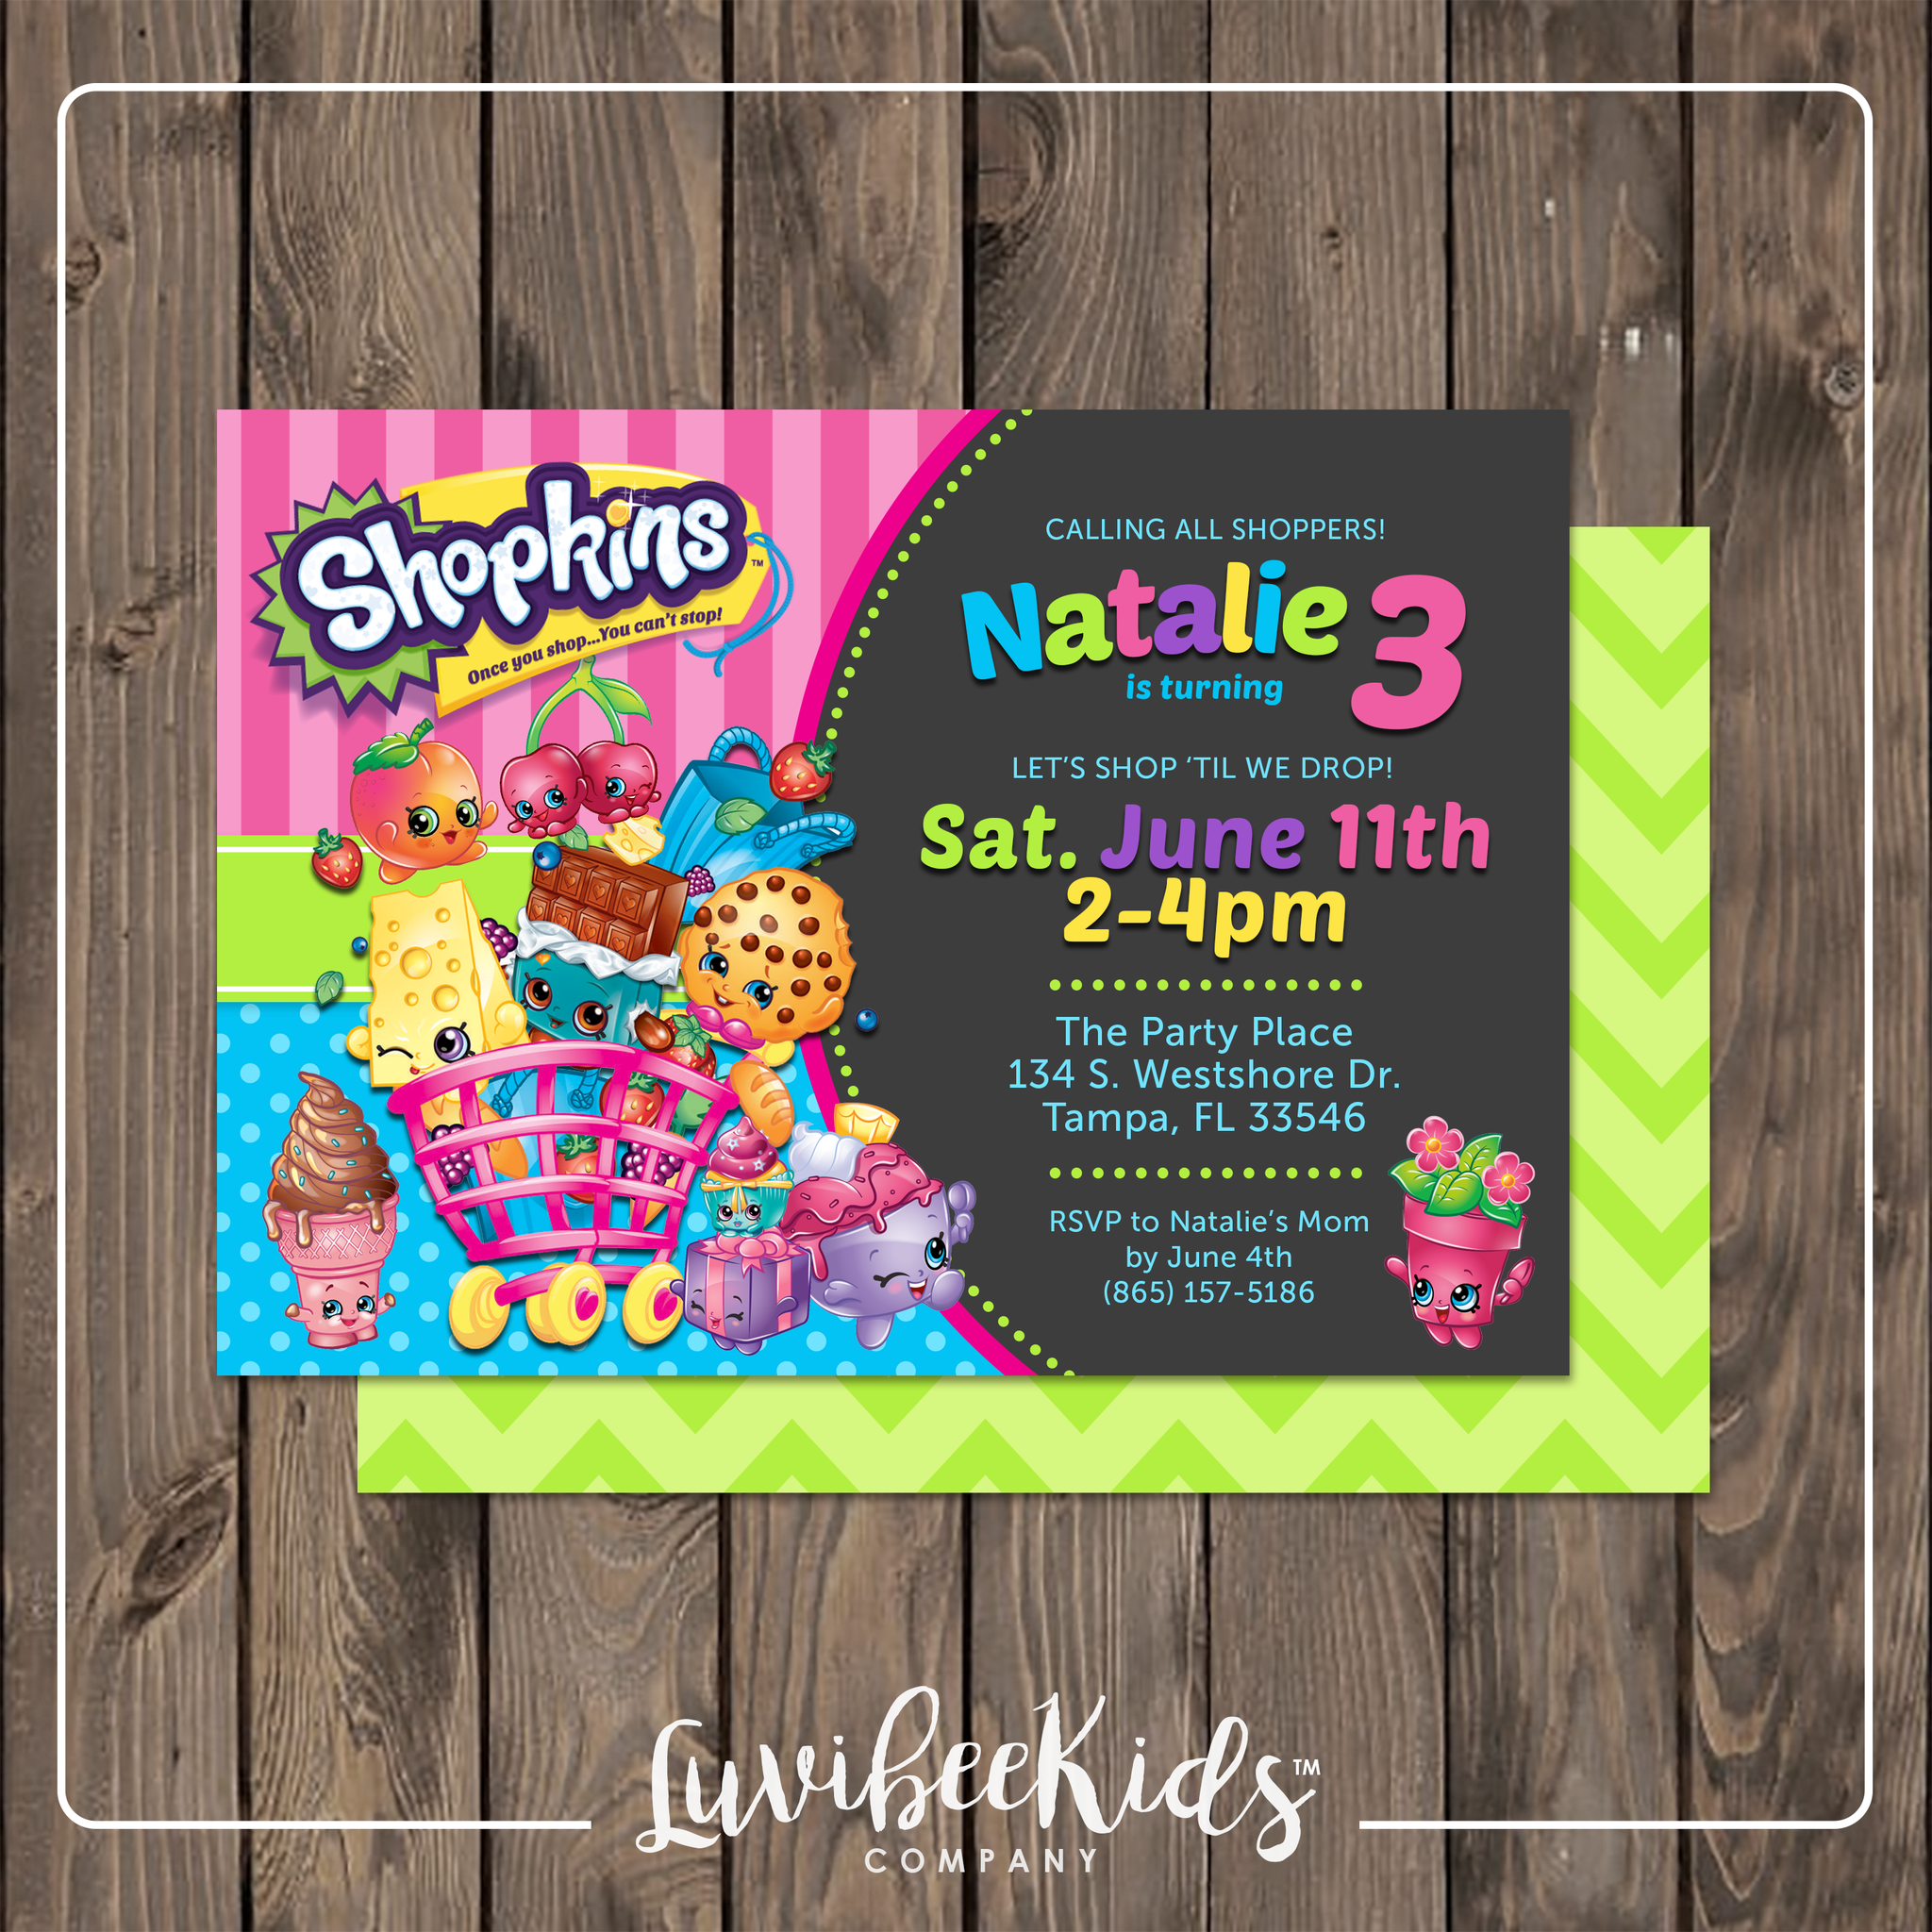 photo regarding Printable Shopkins List known as Shopkins Invitation Printable Birthday Invitation